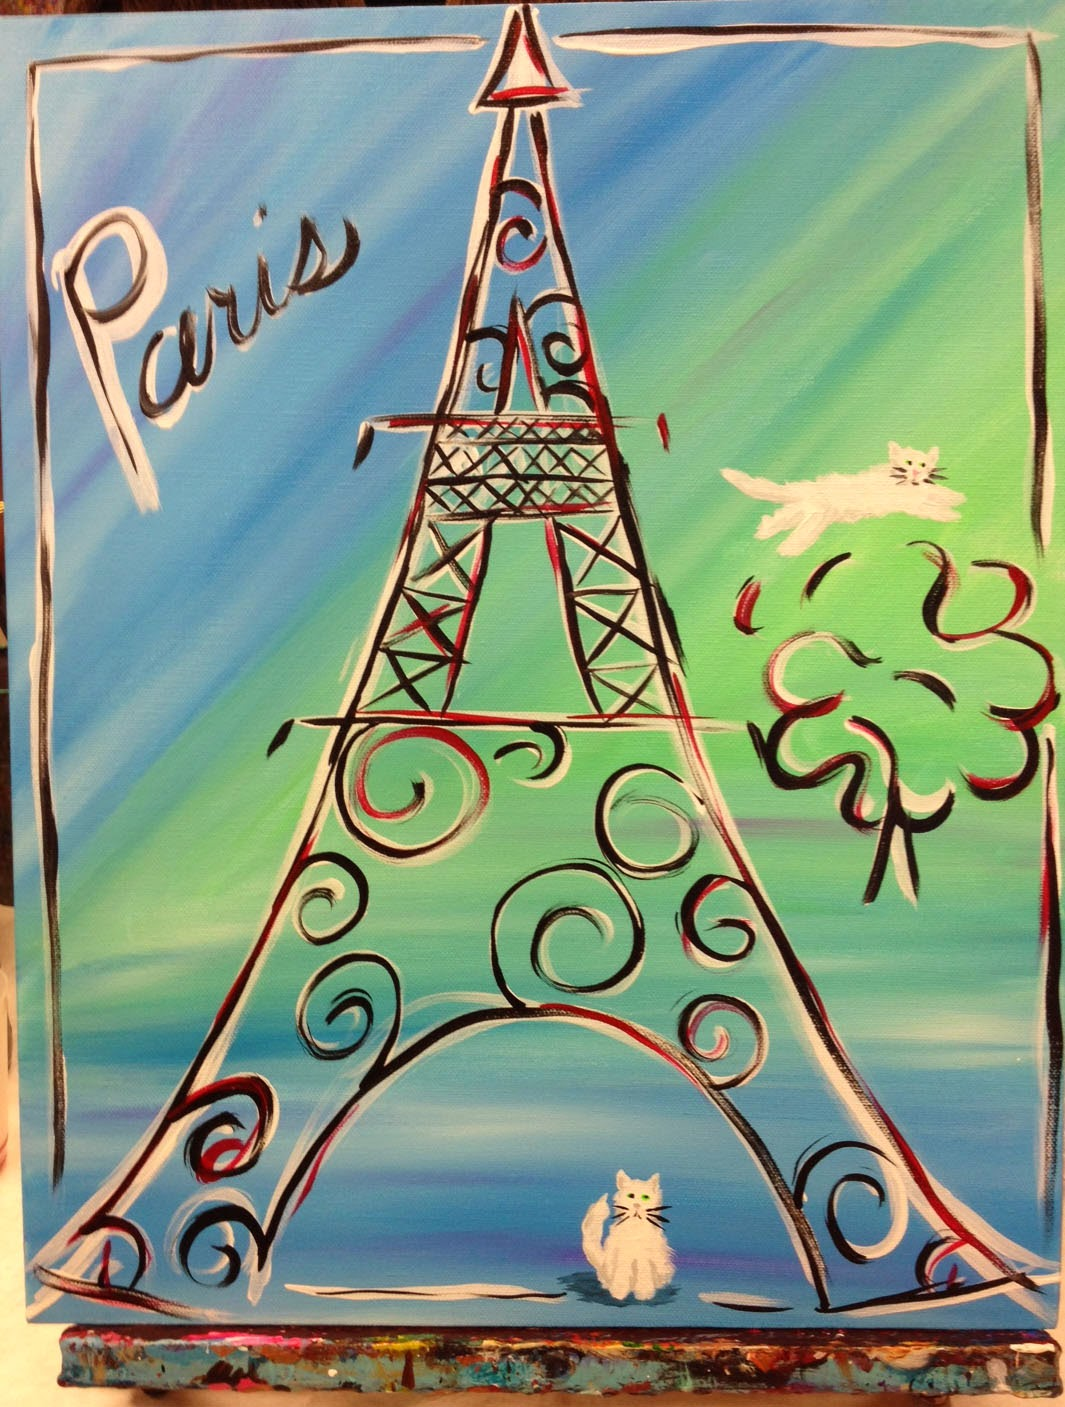 kitten-painting, cat-painting, eifel-tower-painting, sips-n-strokes, dip-n-dab